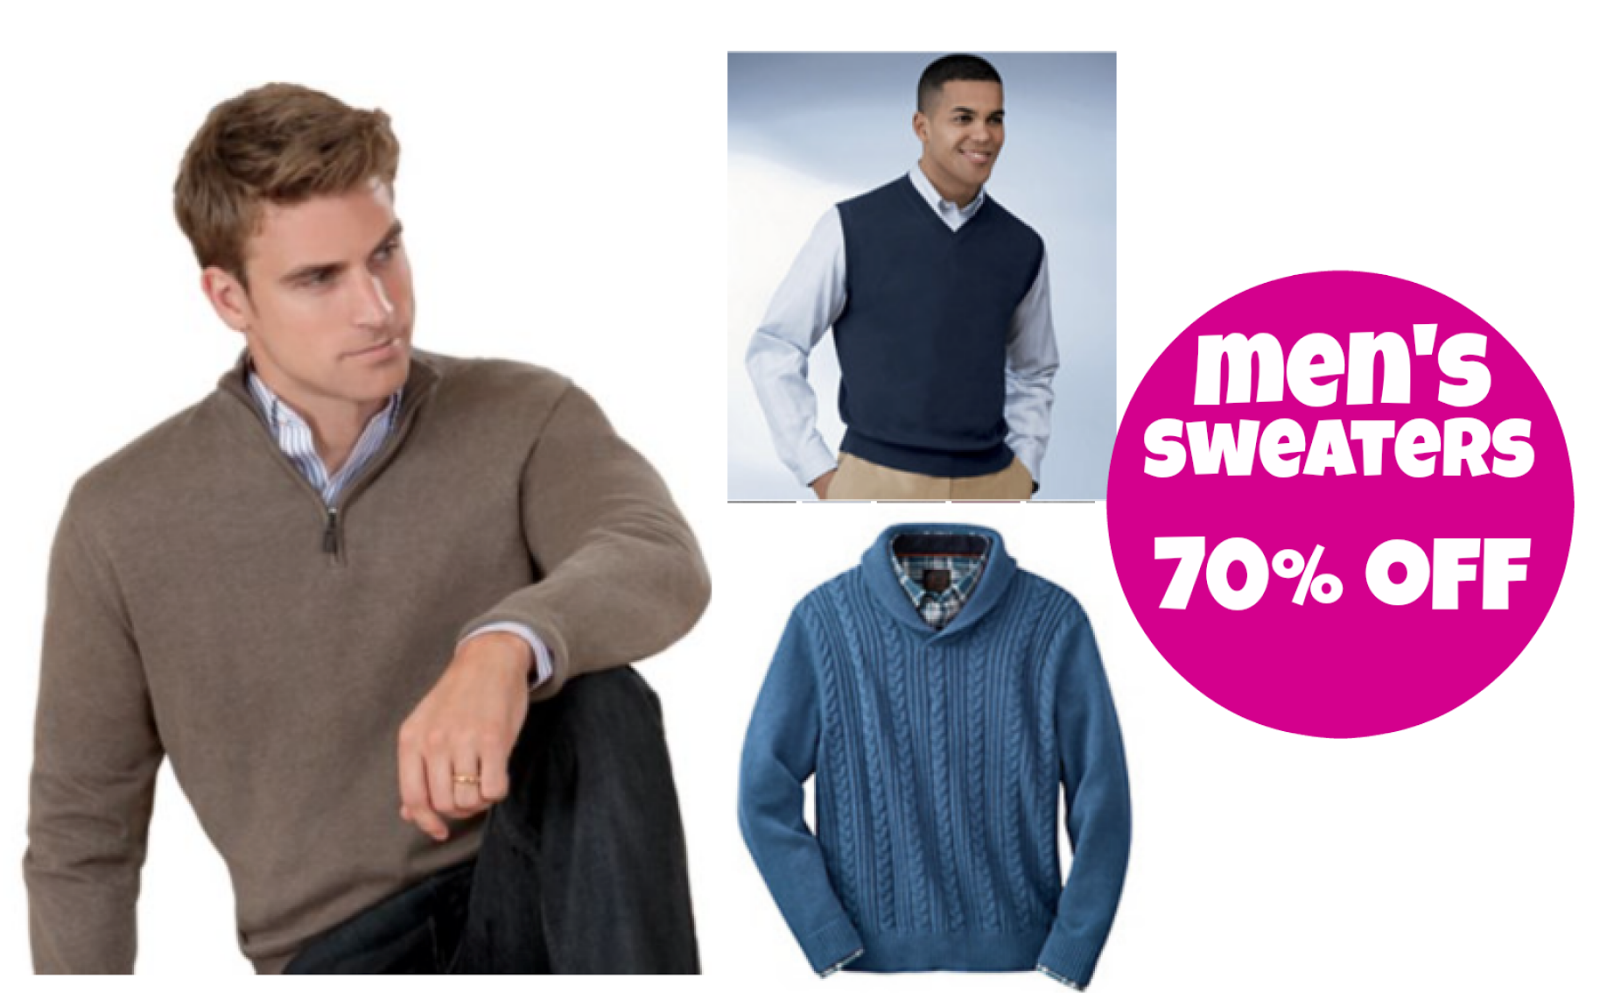 http://www.thebinderladies.com/2014/12/jos-bank-70-off-mens-sweaters-free.html#.VKLQ-AAIA